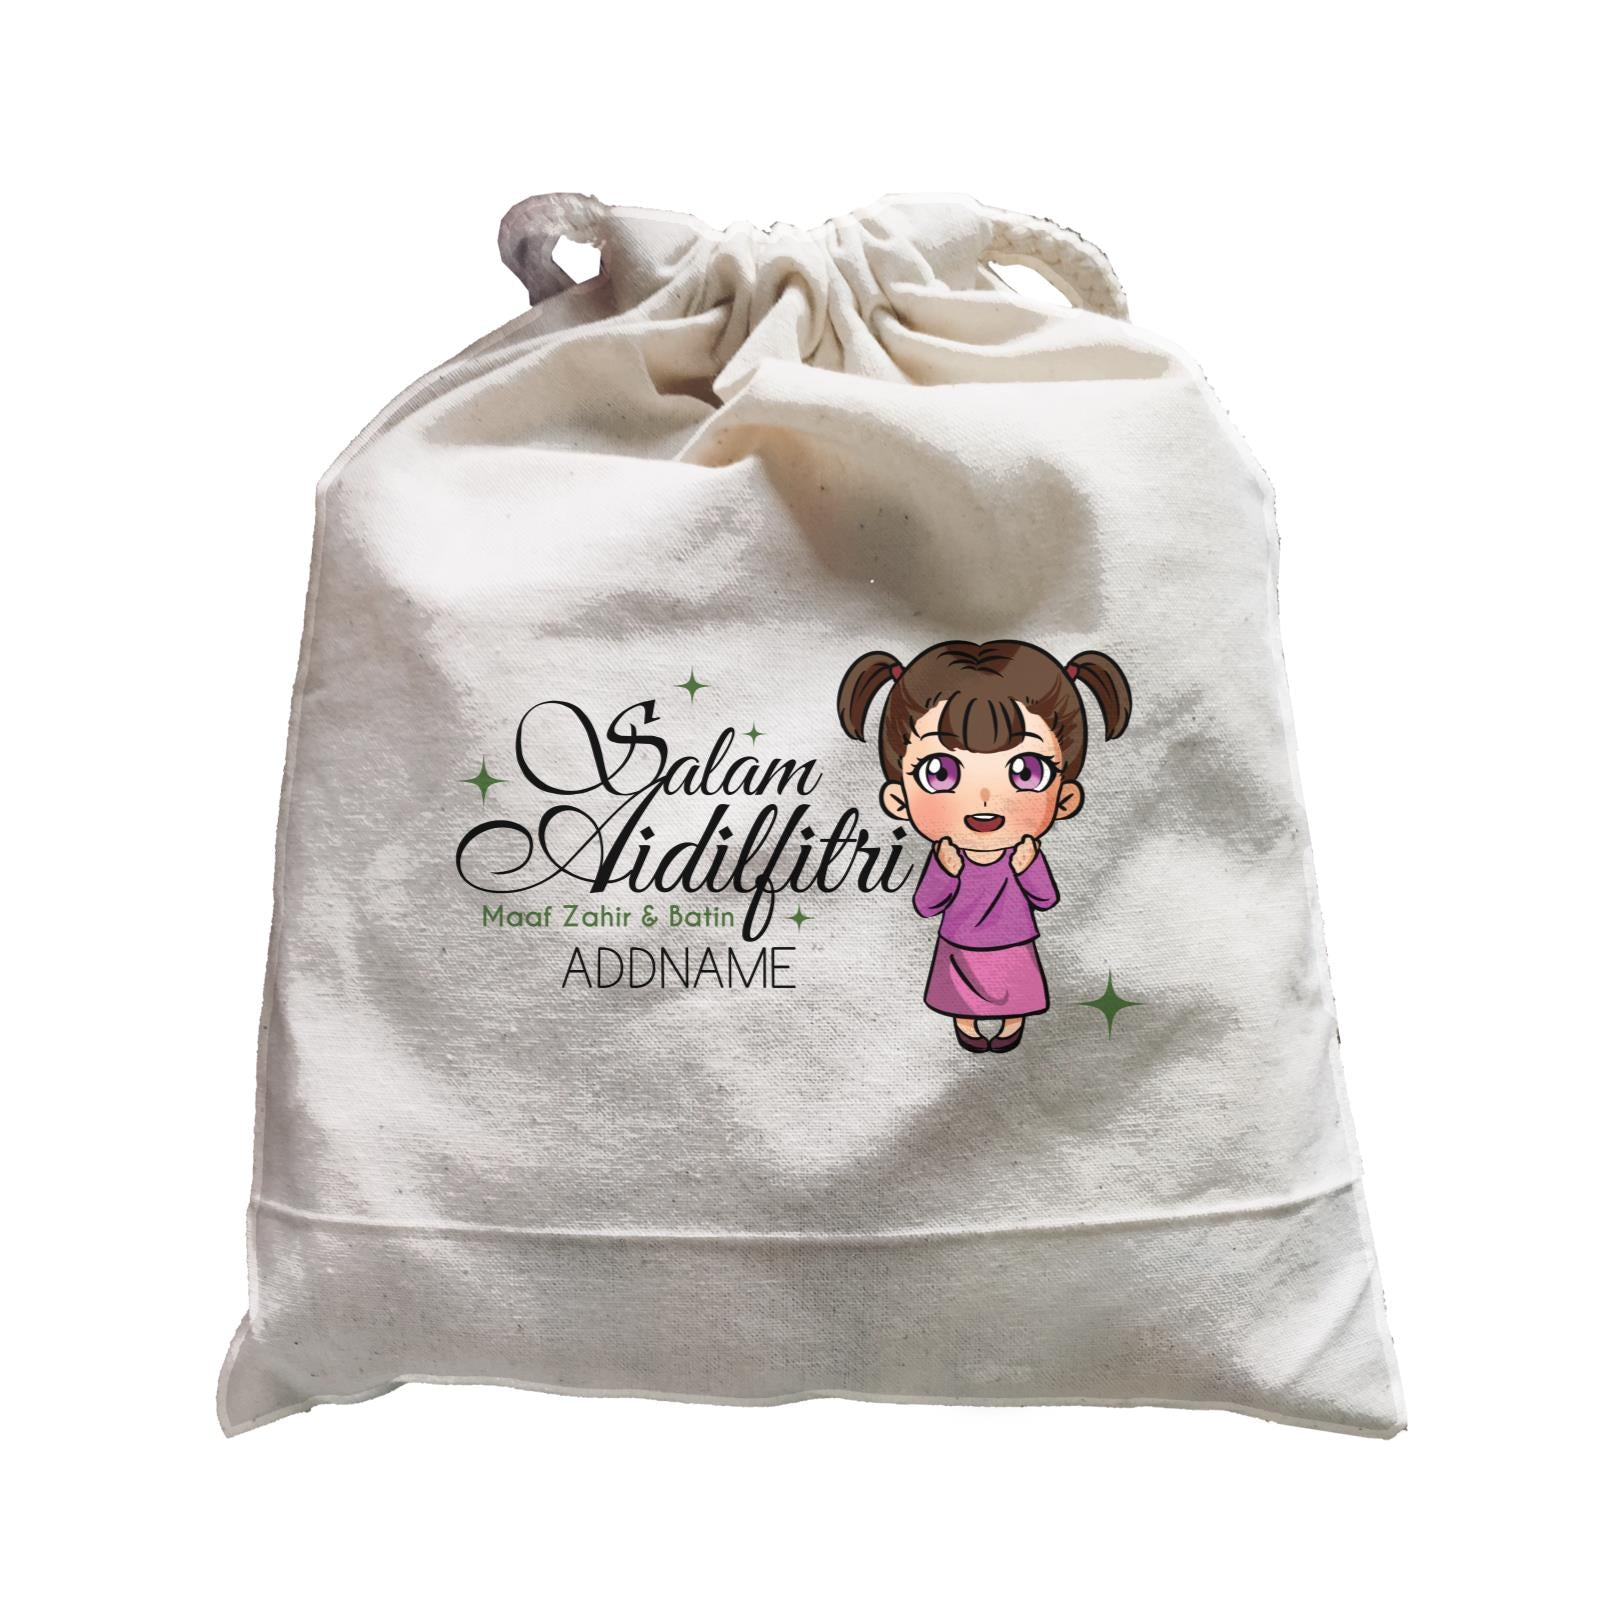 Raya Chibi Wishes Little Girl Addname Wishes Everyone Salam Aidilfitri Maaf Zahir & Batin Accessories Satchel